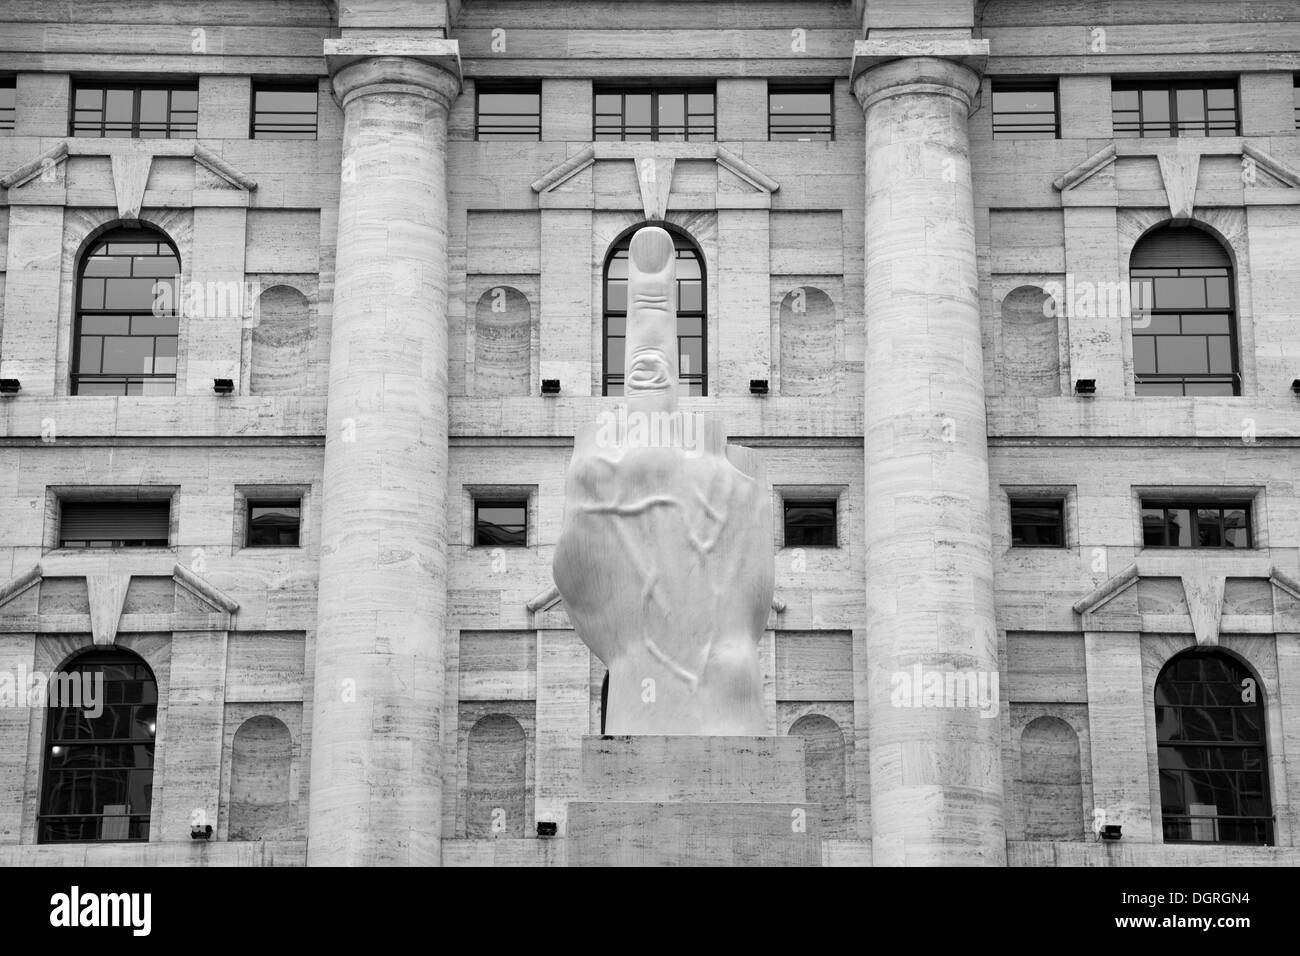 Italy, Lombardy, Milan, sculpture 'crippled hand' by Maurizio Cattelan in front of the Stock Exchange - Stock Image